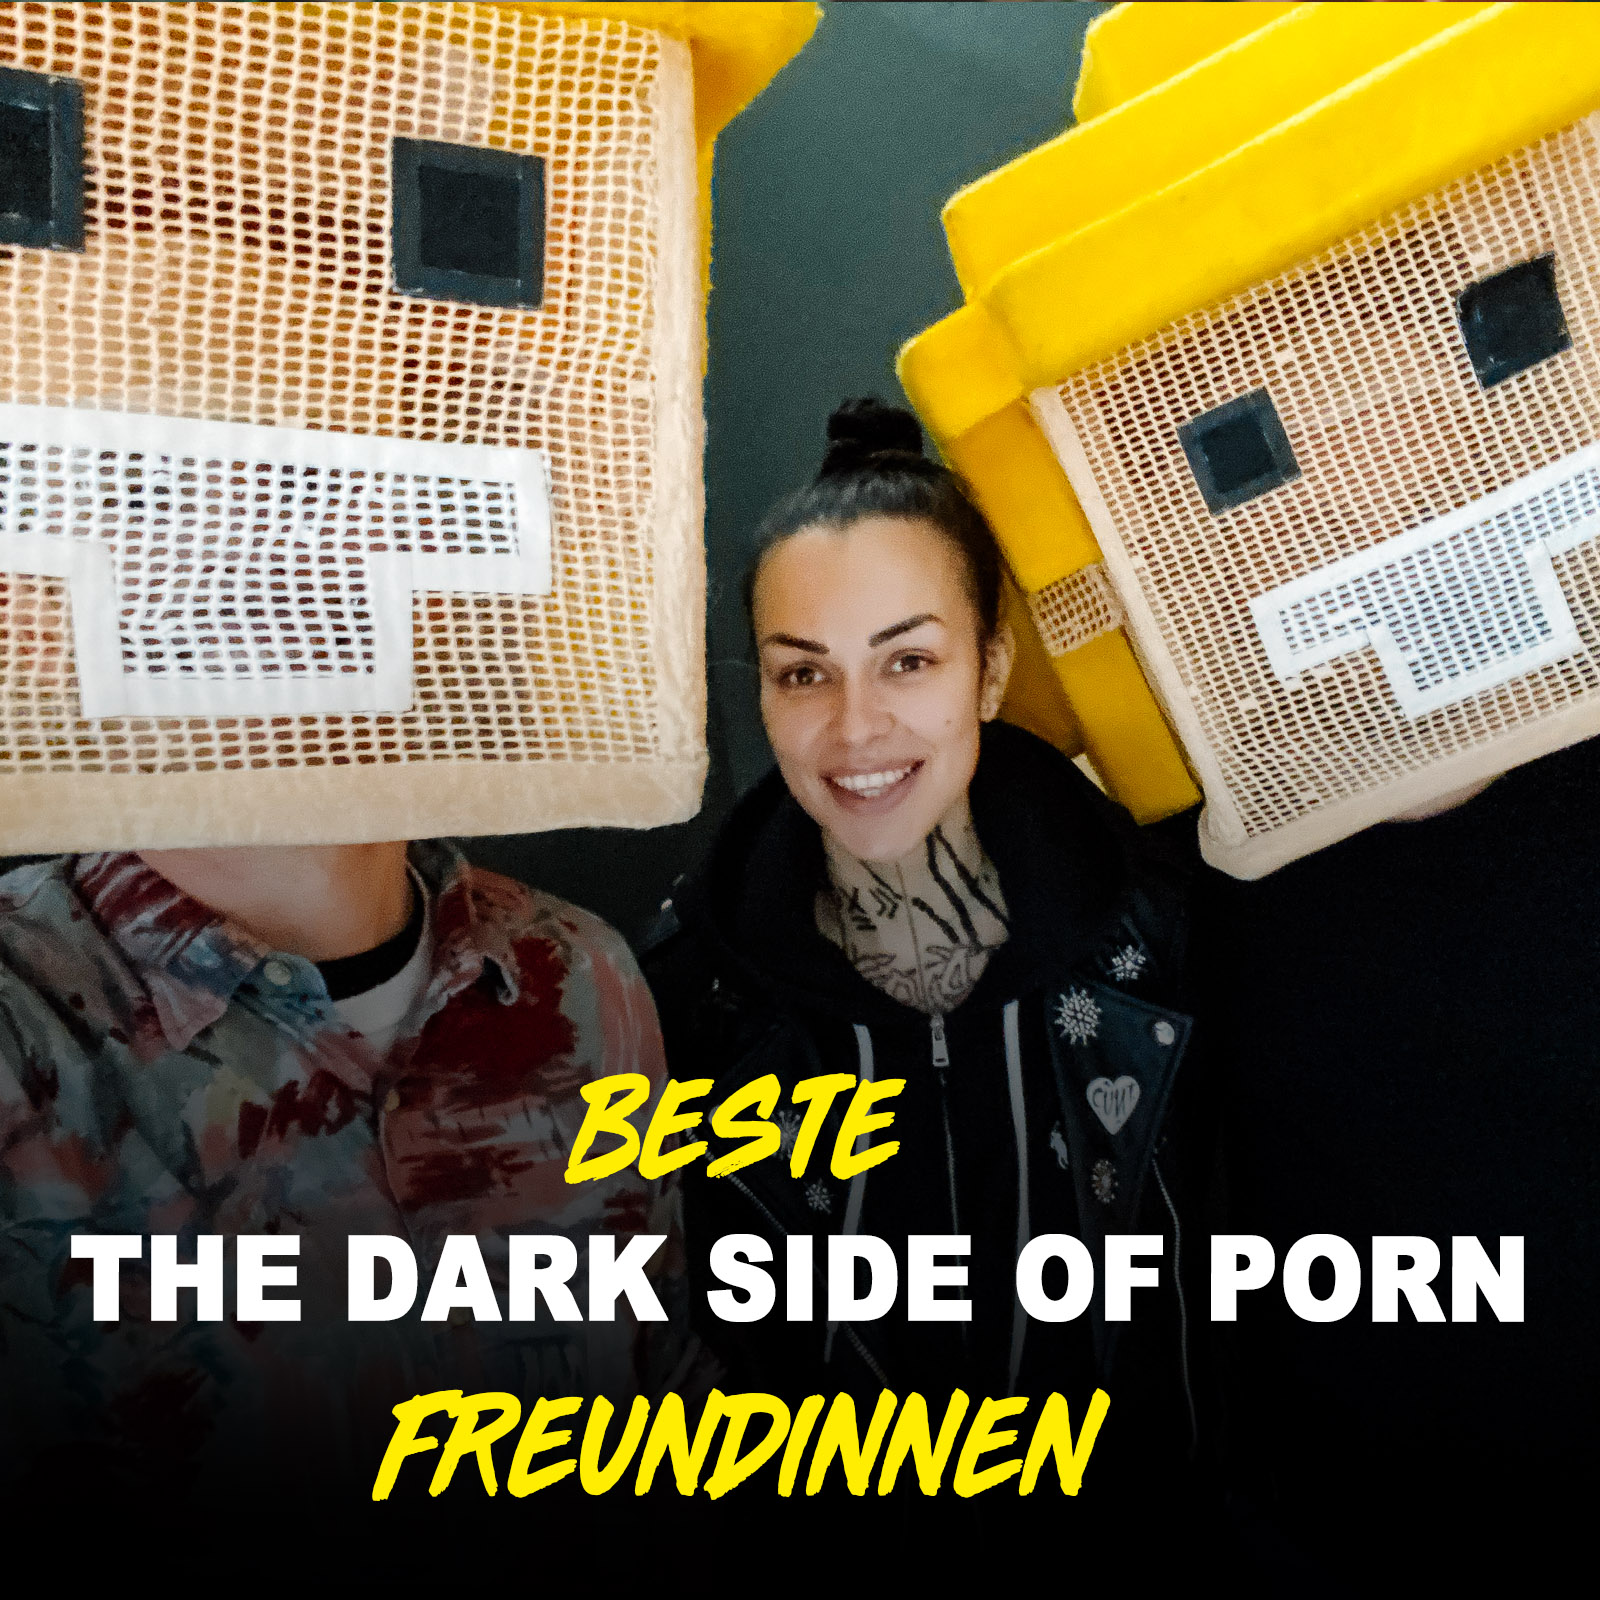 The Dark side of Porn